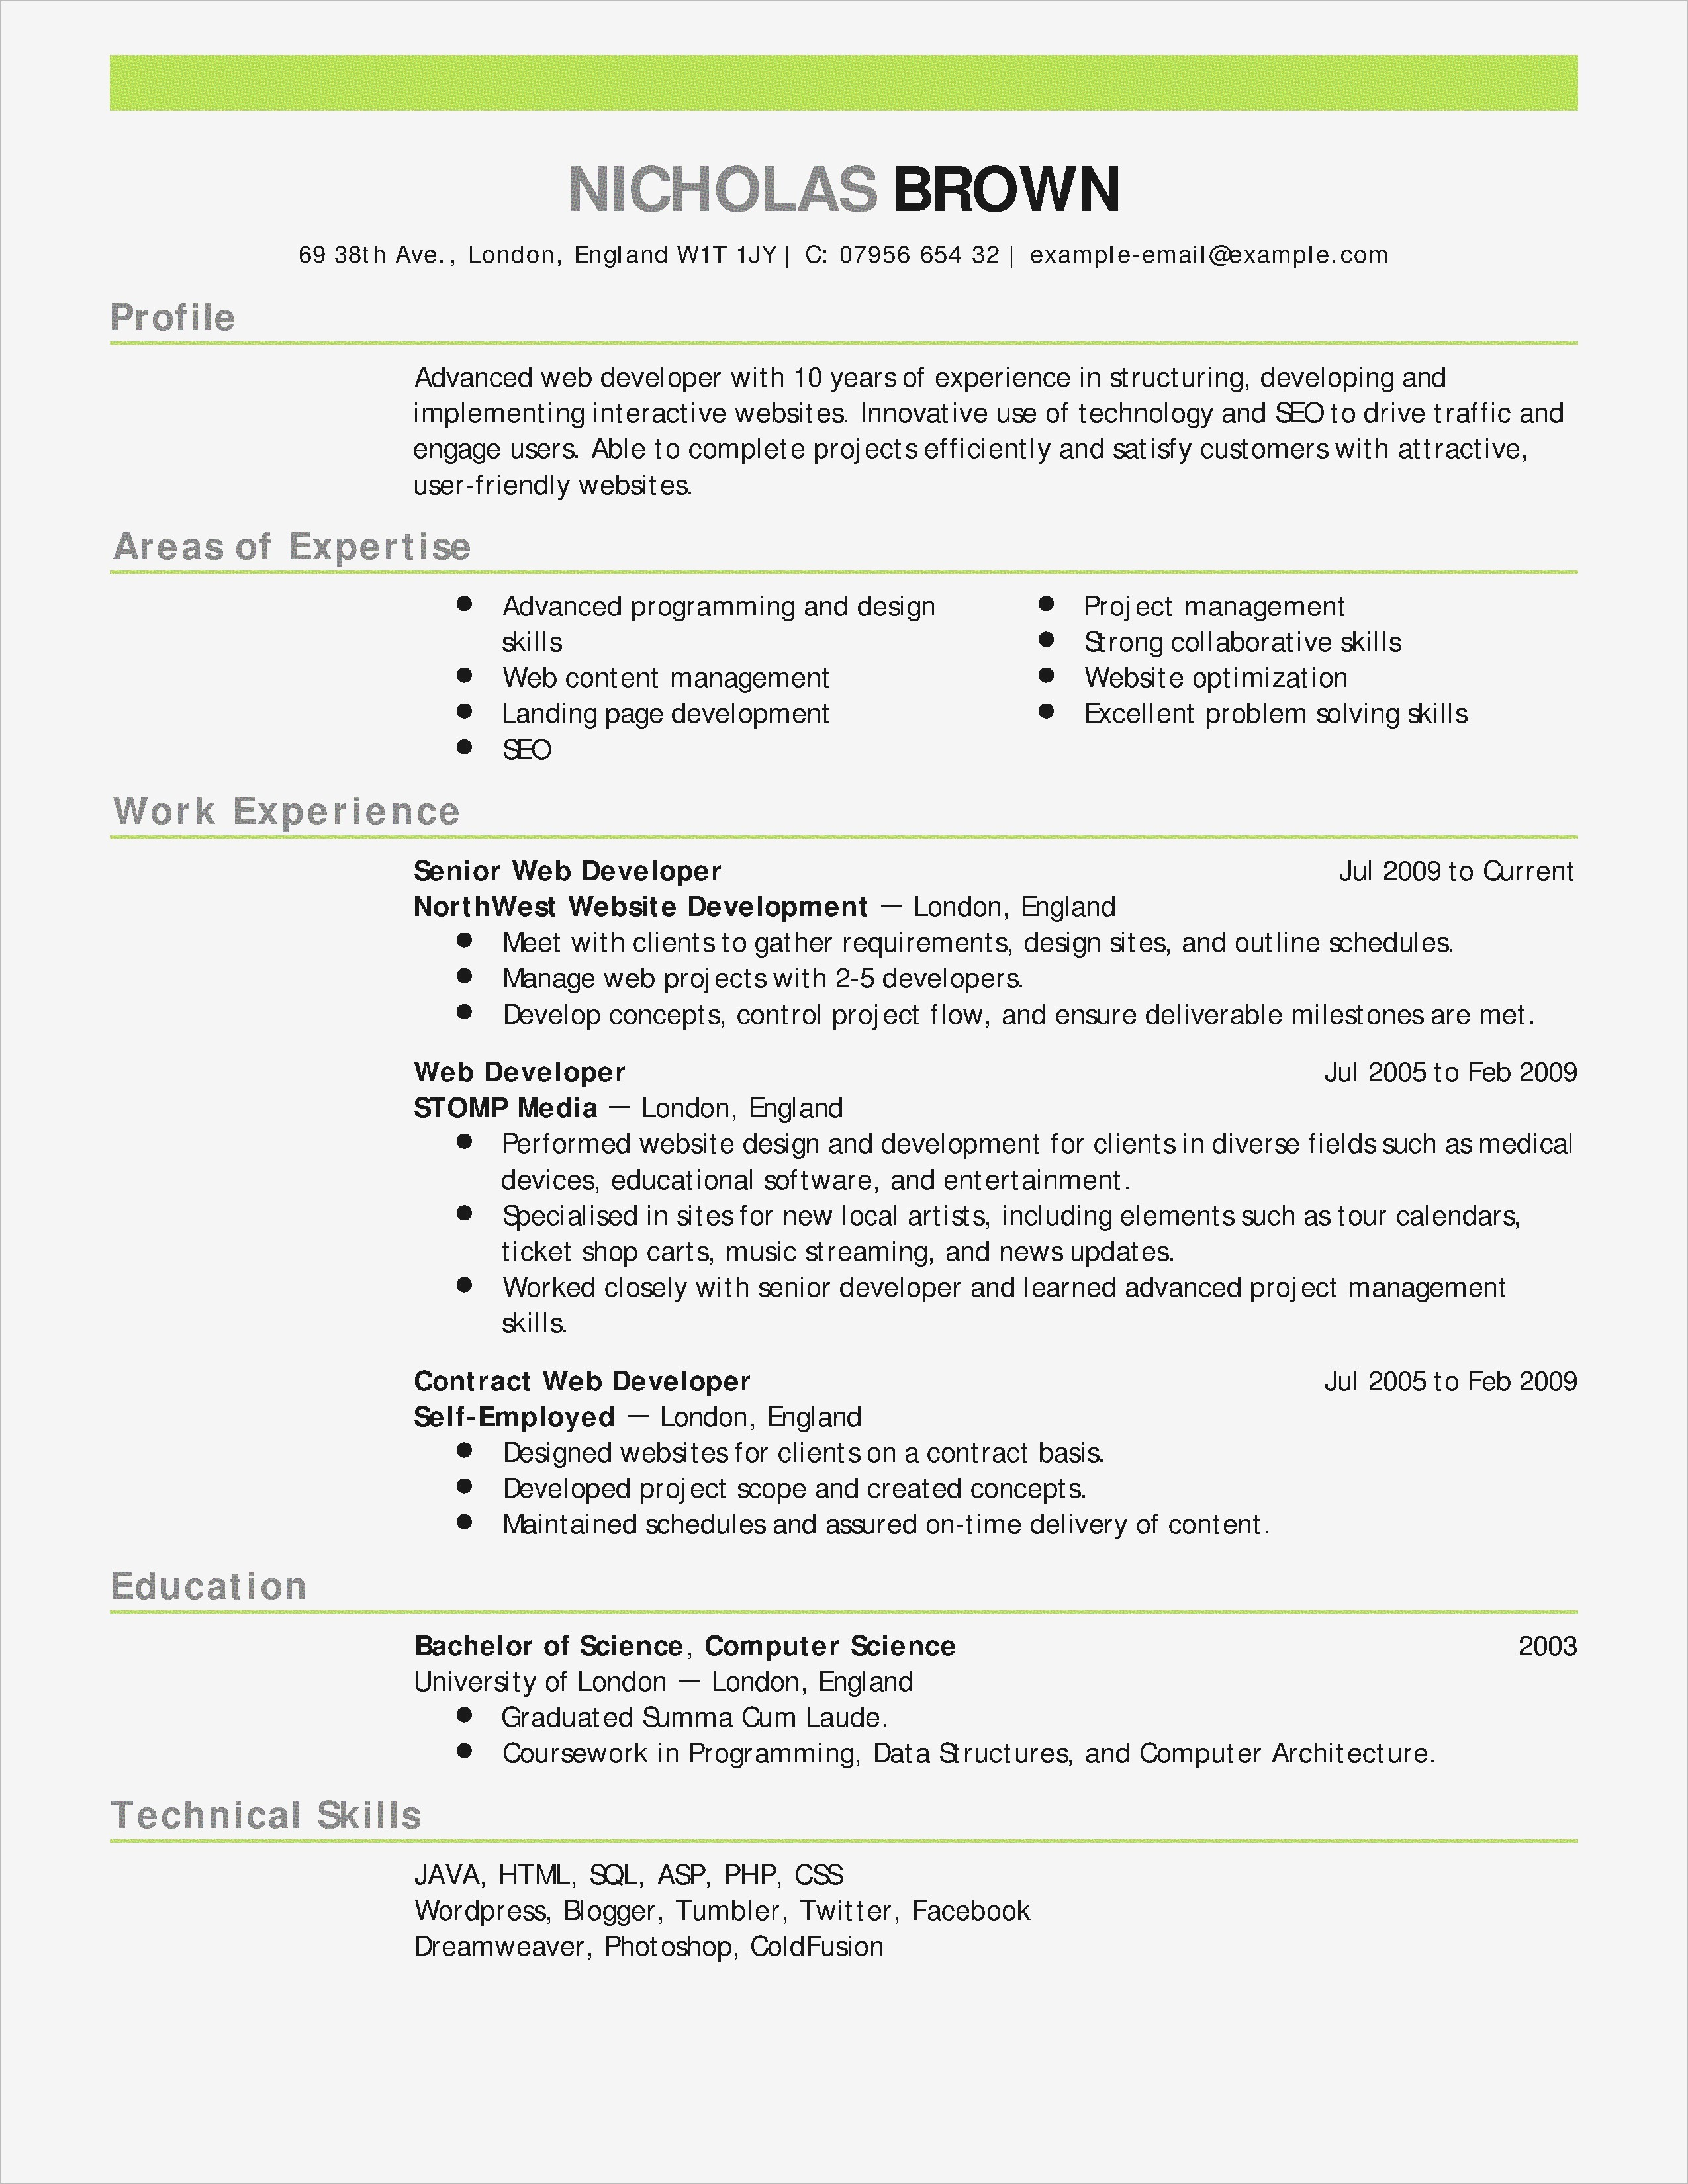 Resume for Stay at Home Mom Template - 20 Elegant Stay at Home Mom Resume Examples